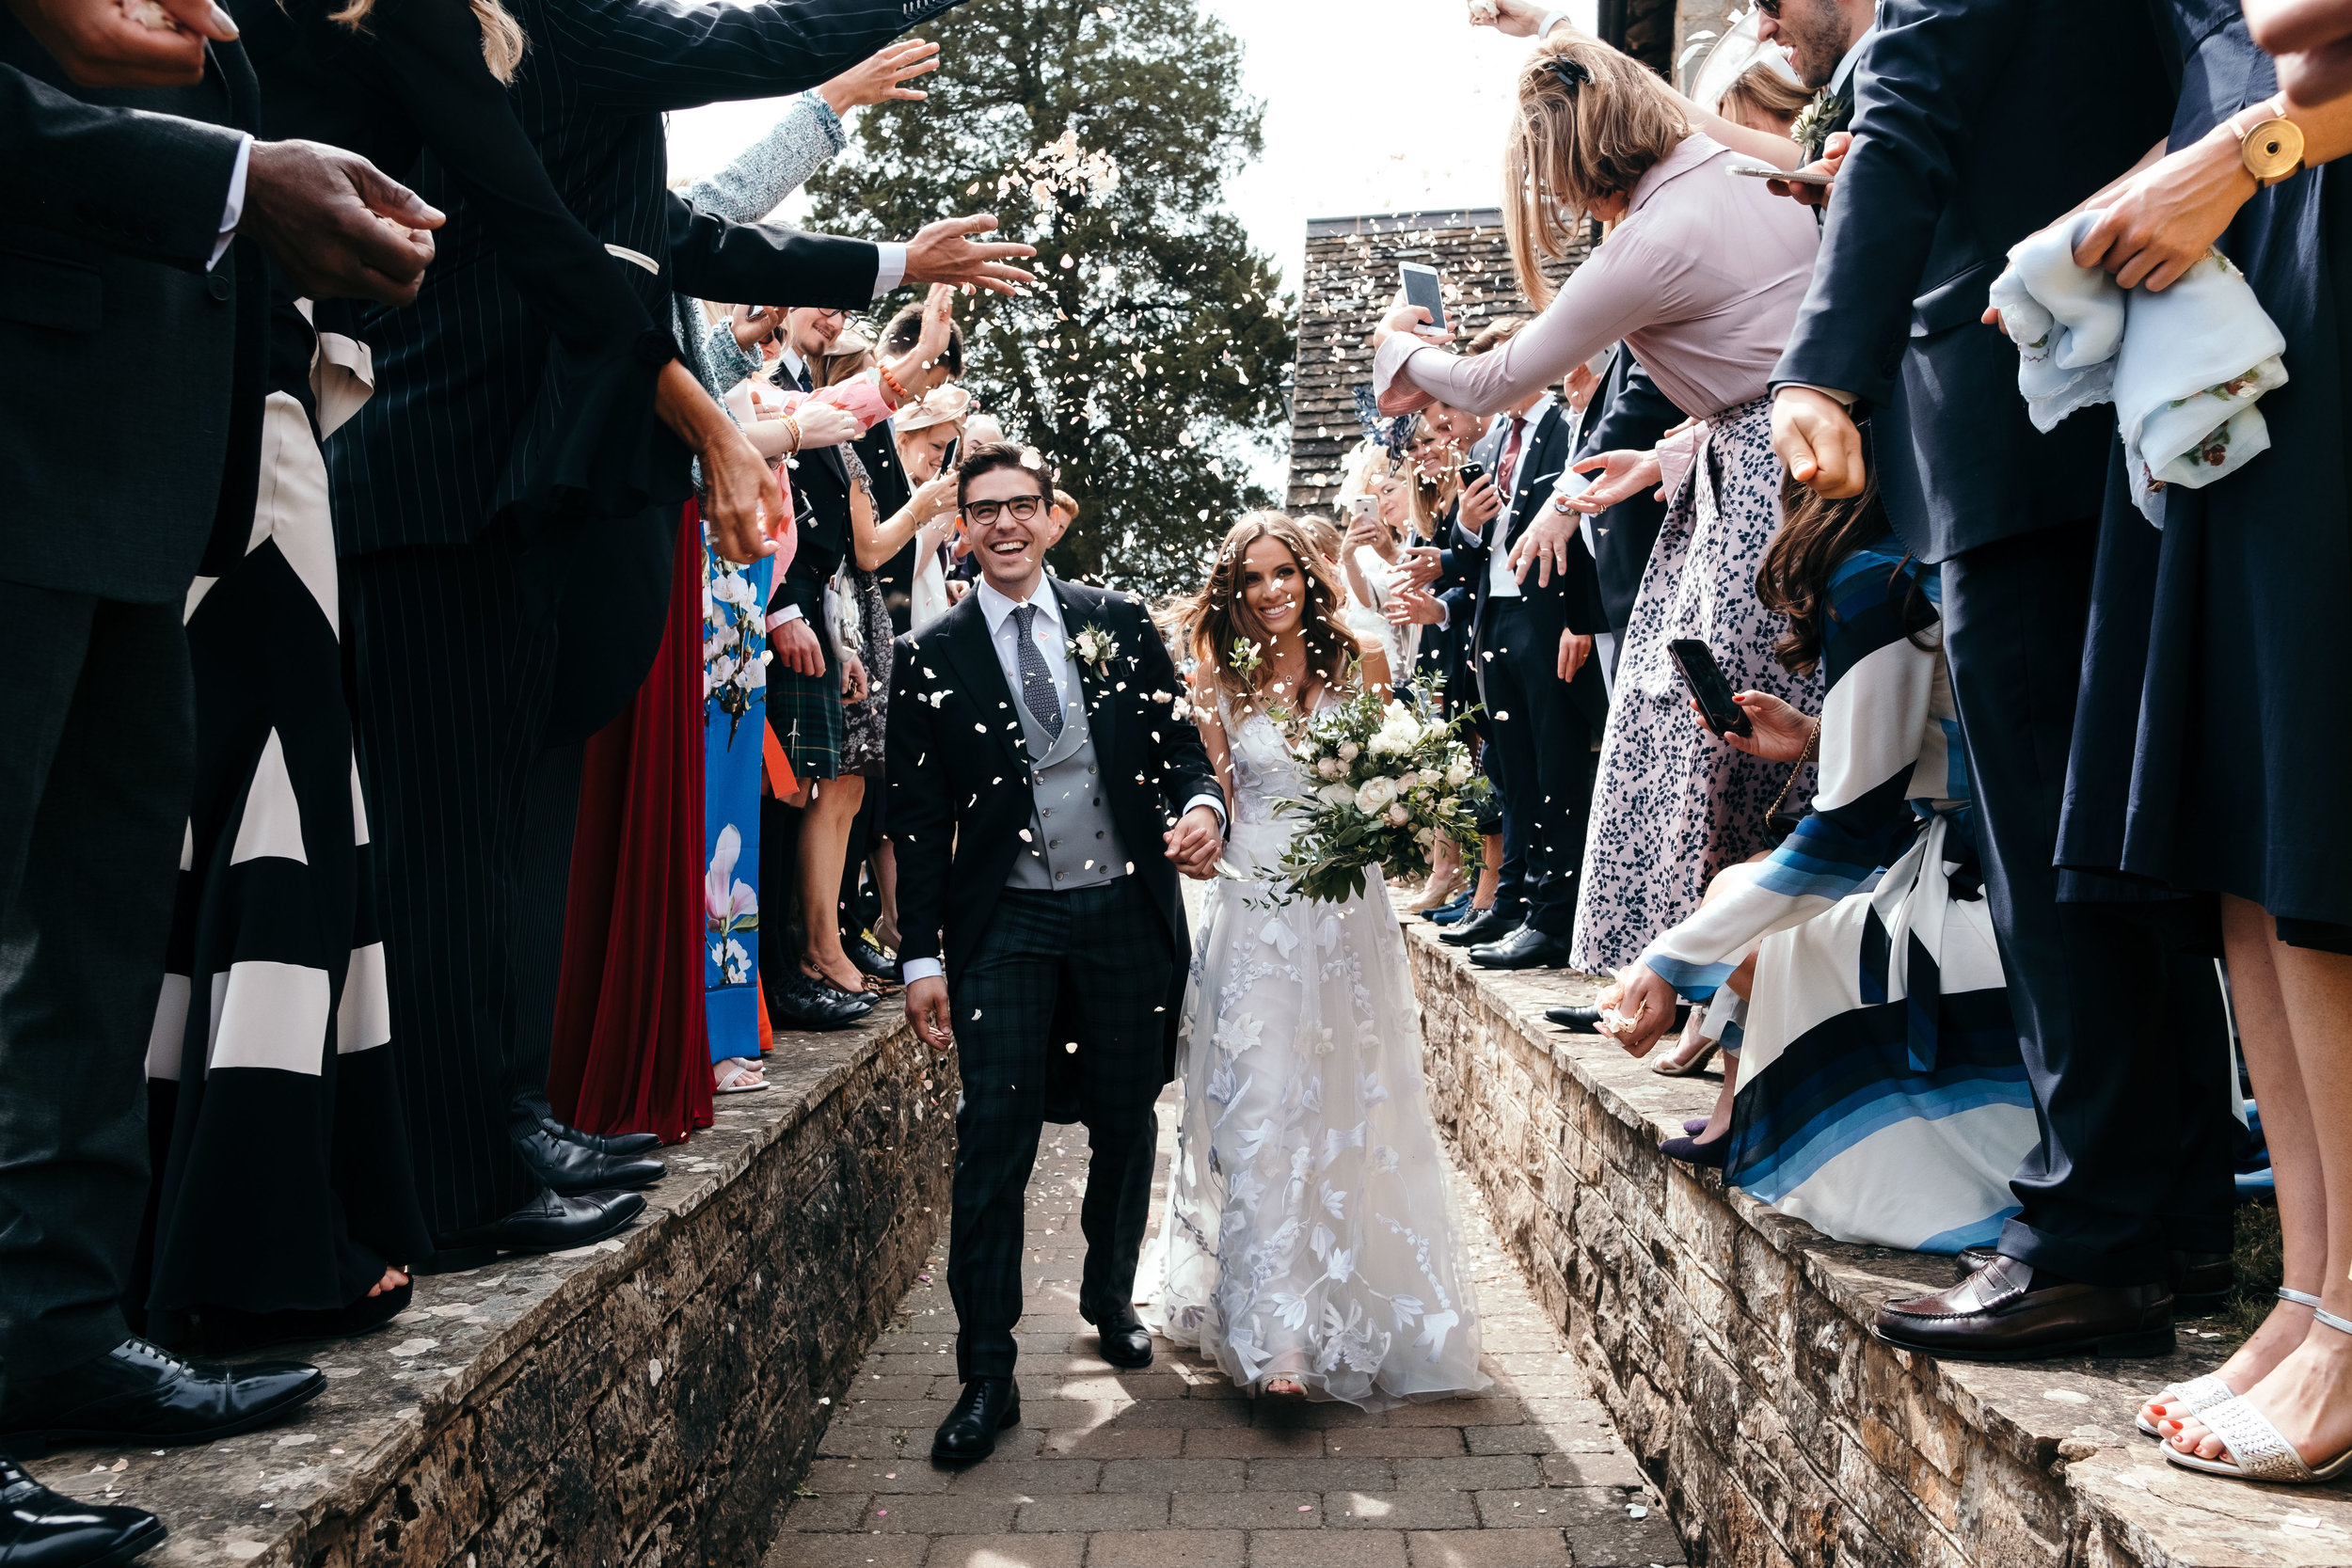 Bride and groom 2020 confetti throwing documentary wedding in UK